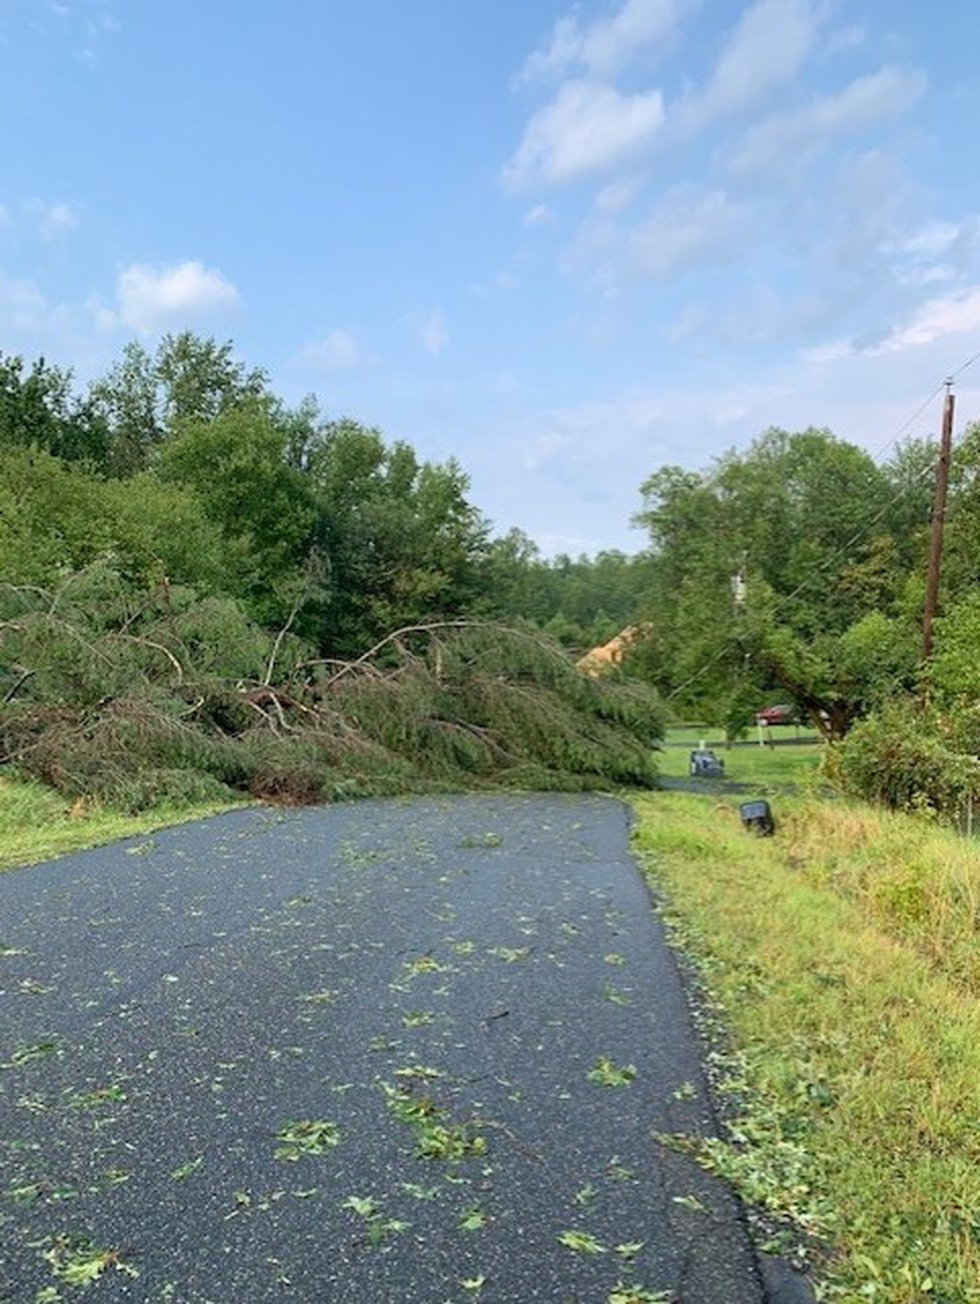 Storms caused damage on Thursday.